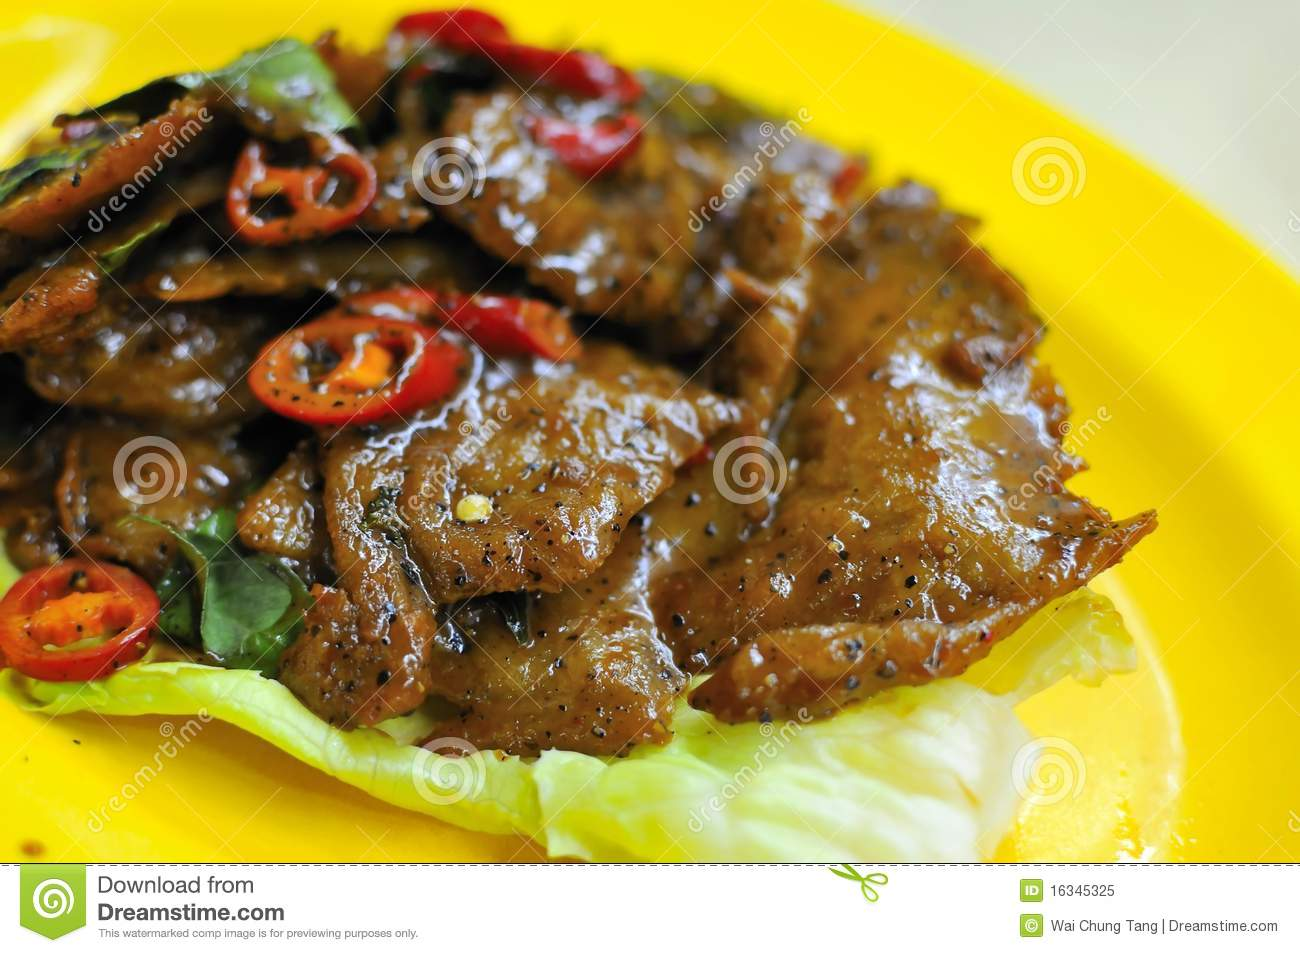 Black Pepper Steak Royalty Free Stock Photo - Image: 16345325